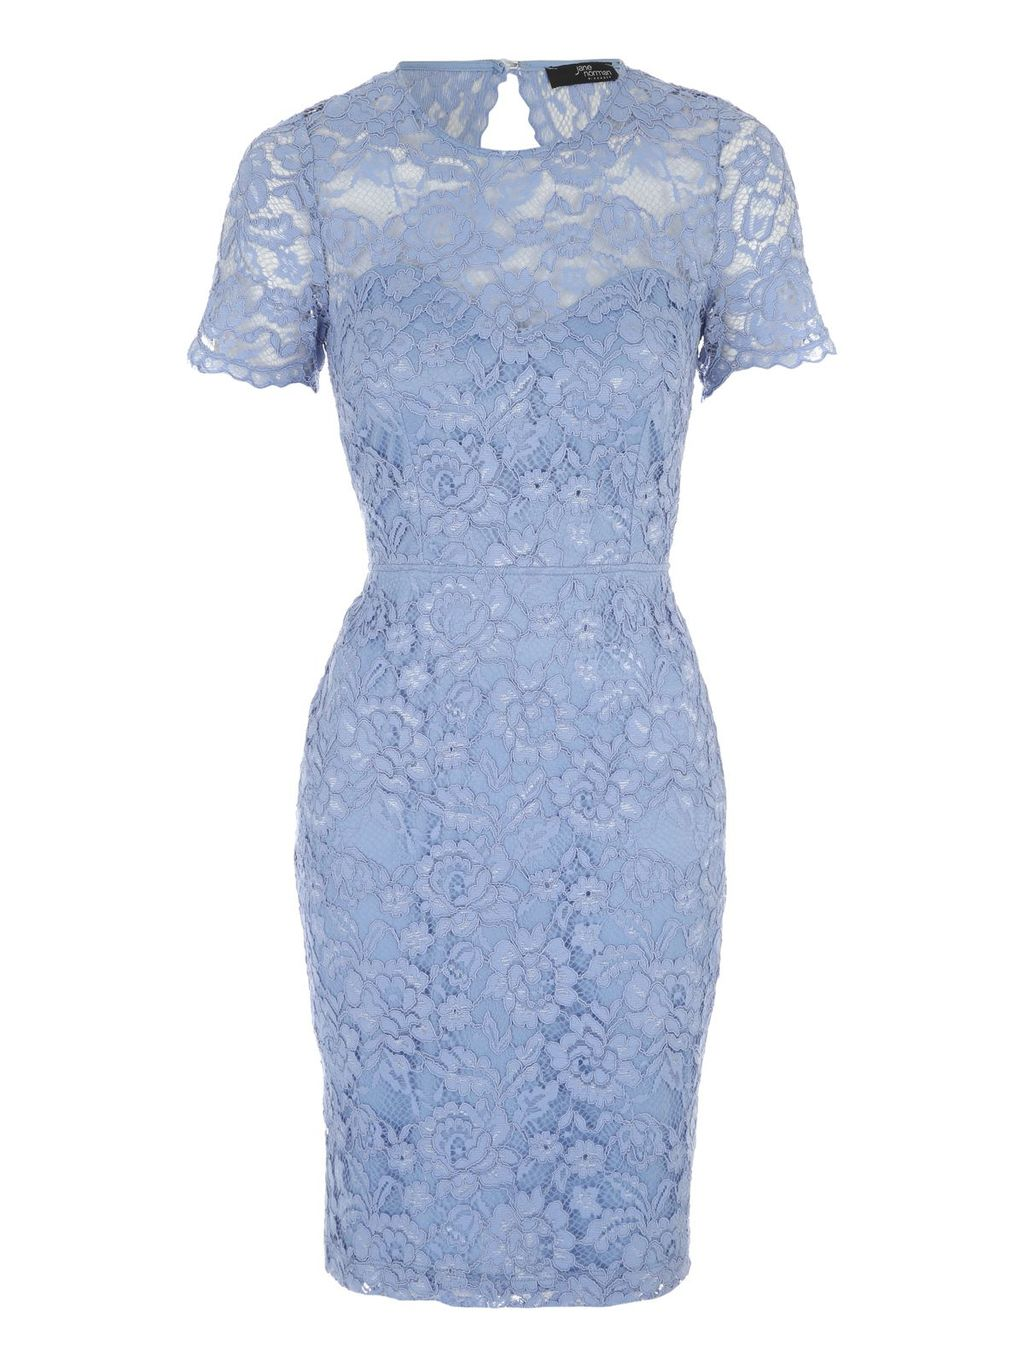 Corded Lace Short Sleeve Dress, Blue - fit: tight; style: bodycon; predominant colour: pale blue; occasions: evening; length: just above the knee; neckline: crew; sleeve length: short sleeve; sleeve style: standard; texture group: lace; pattern type: fabric; pattern size: standard; pattern: patterned/print; fibres: nylon - stretch; embellishment: lace; season: s/s 2016